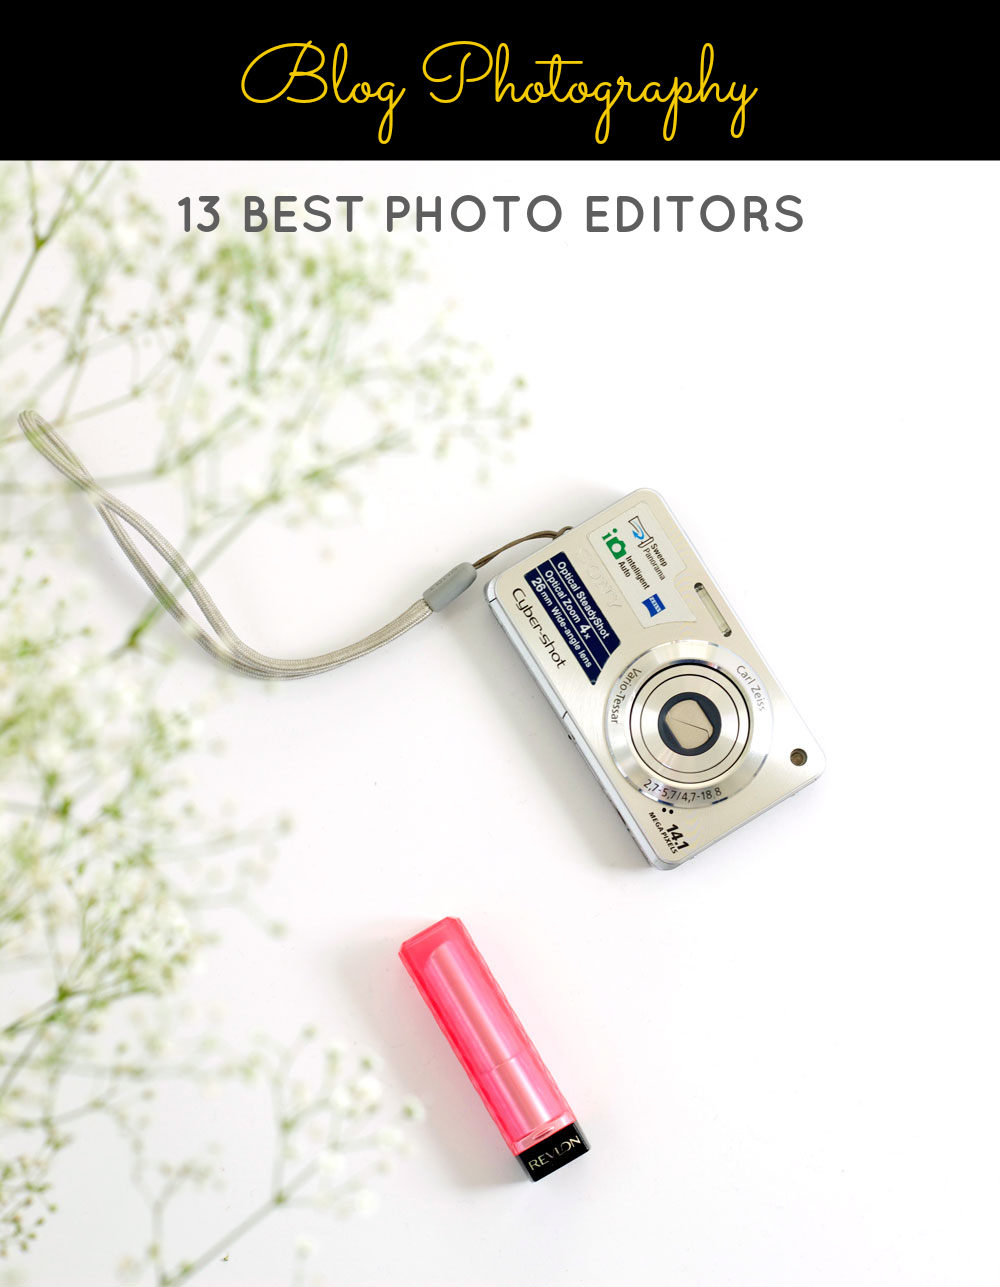 Want to spruce up your blog photos with a little bit of editing? Here is a list of 13 BEST EDITING TOOLS (Paid + FREE) for editing your blog photos!